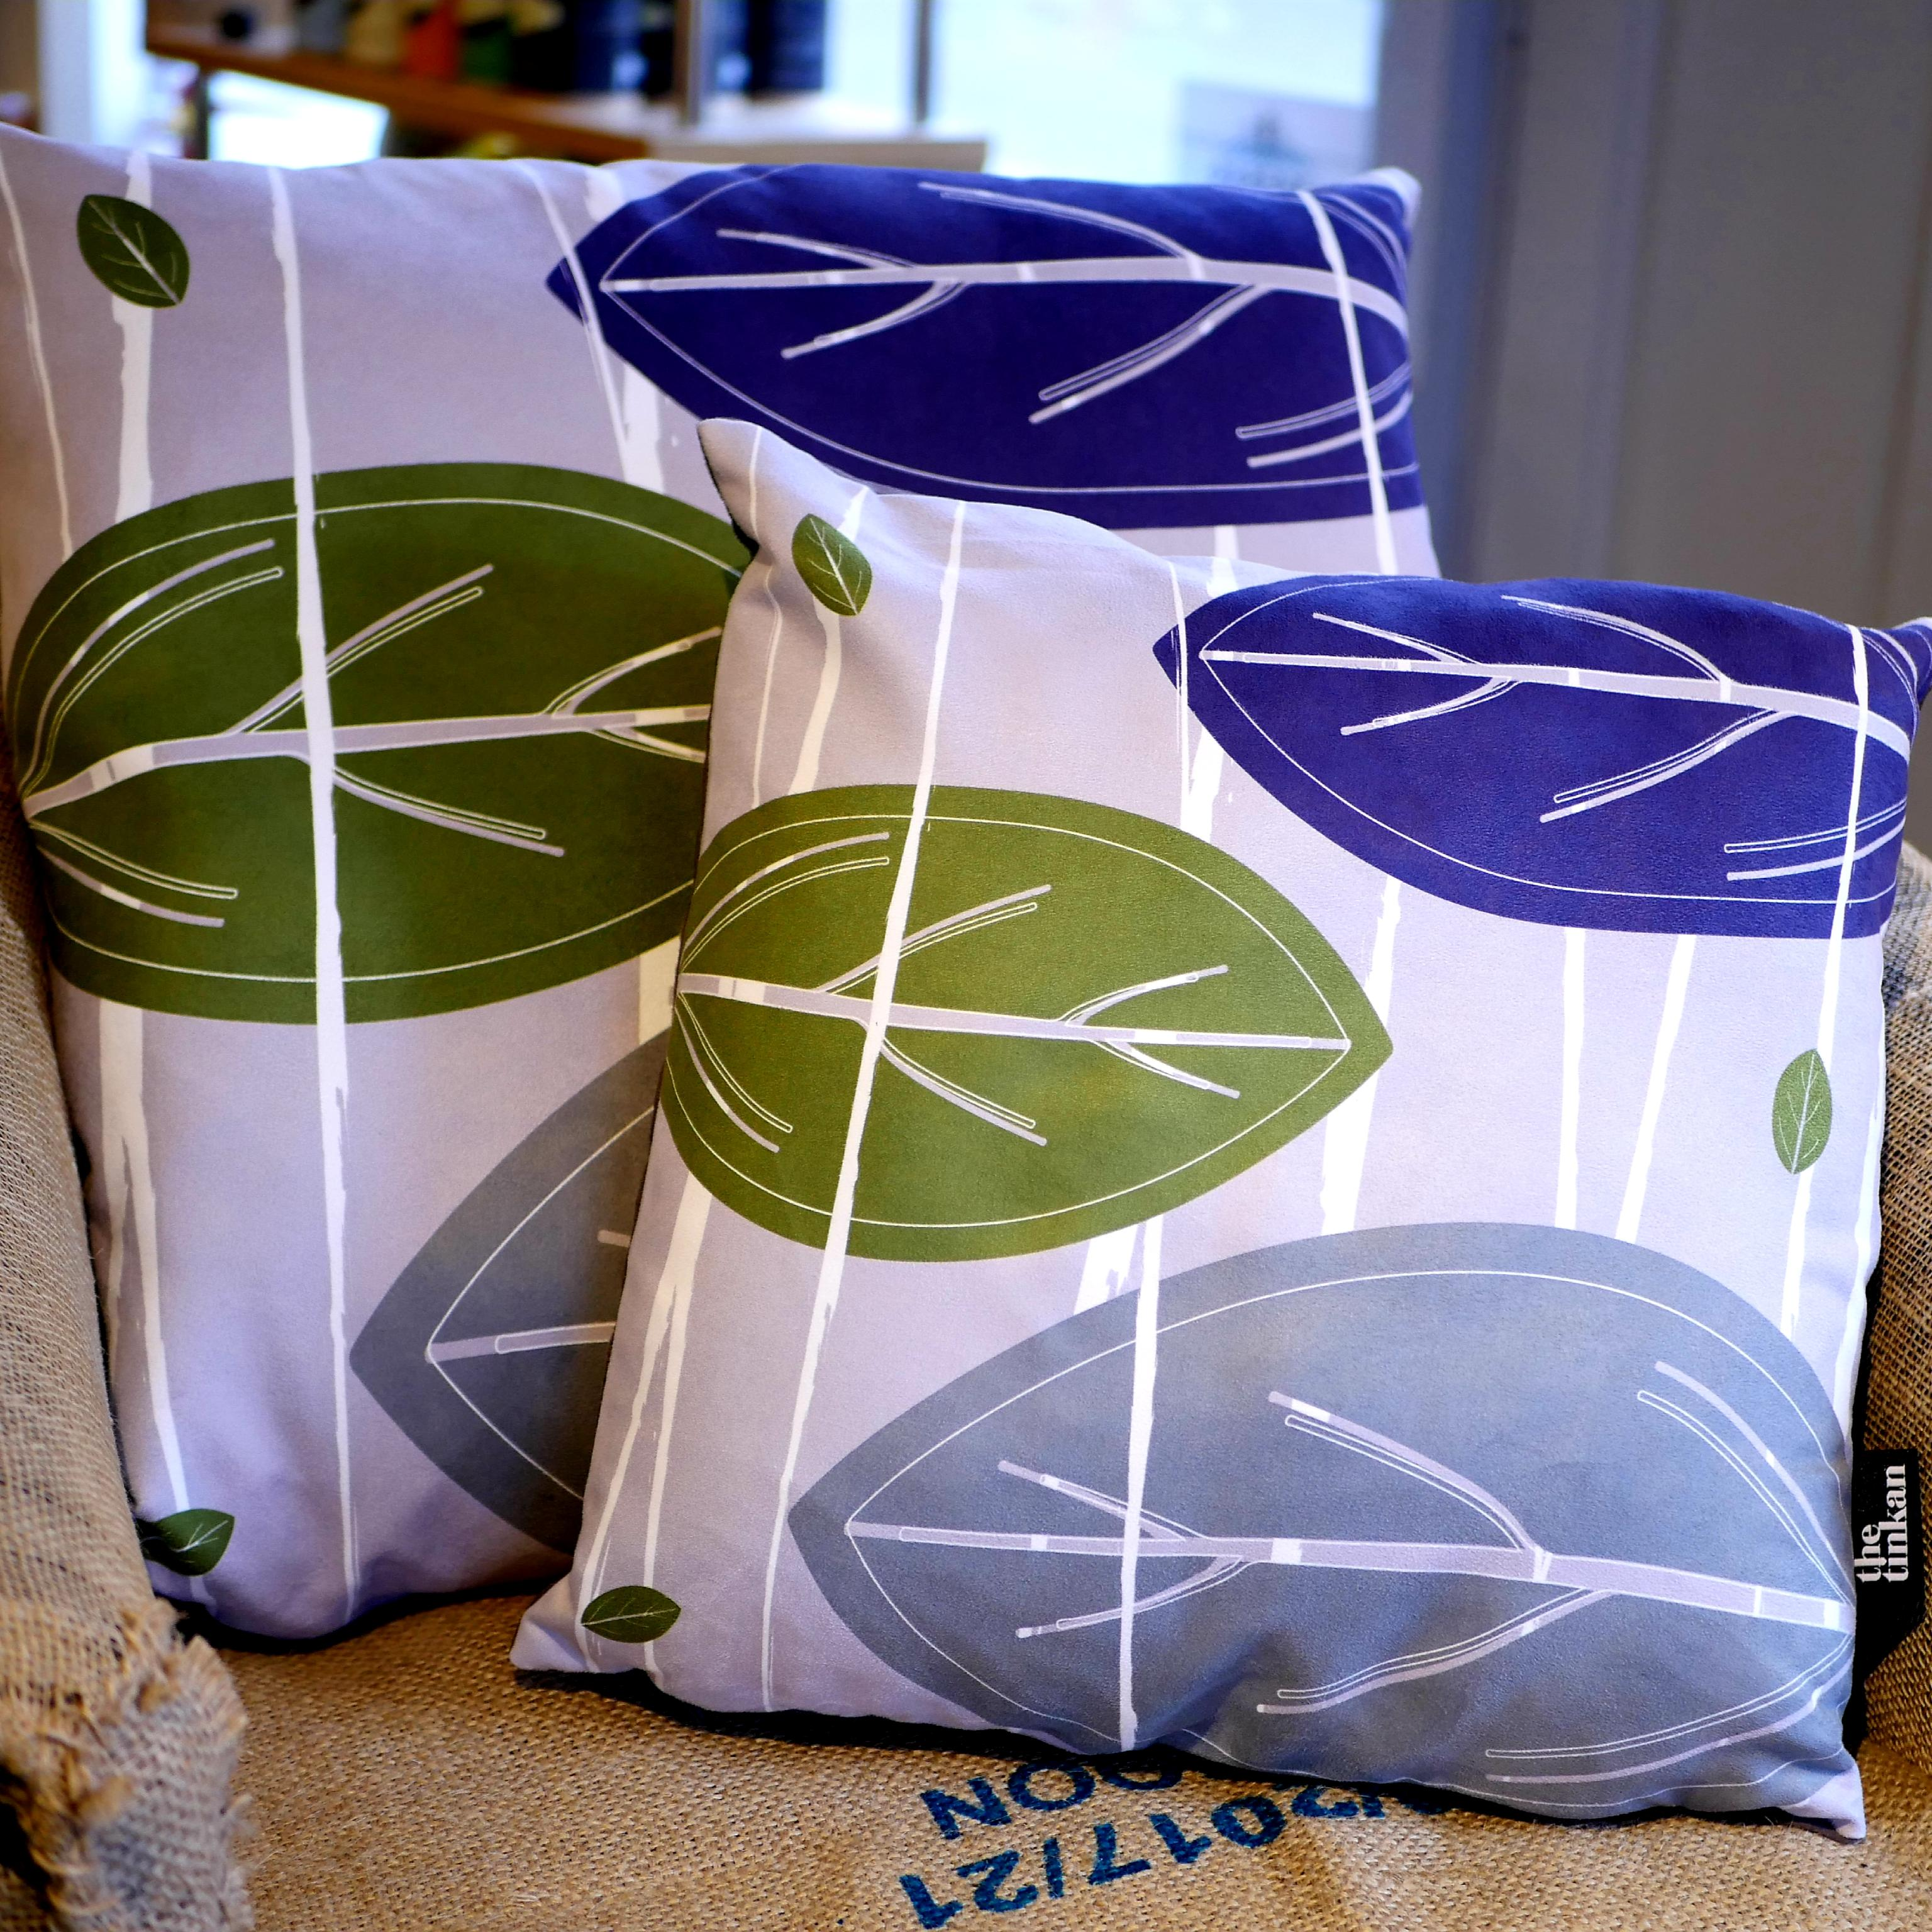 Purple, olive green & grey faux suede soft feel Abstract Leaves Cushions, 43cm & 57cm square, with luxury inner pads designed by thetinkan. VIEW PRODUCT >>